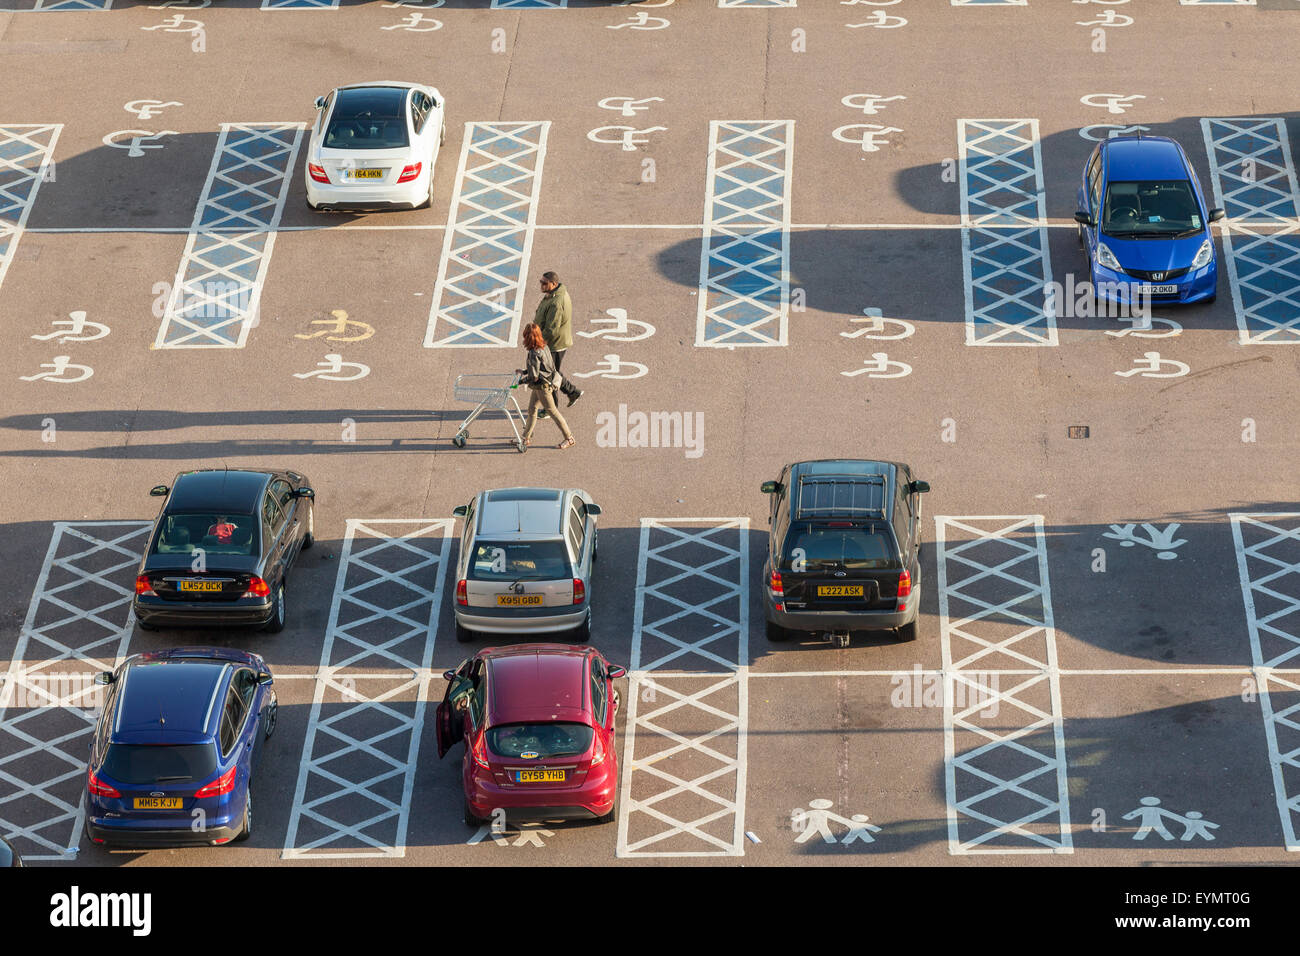 Car park at Brighton Marina, East Sussex, England. - Stock Image